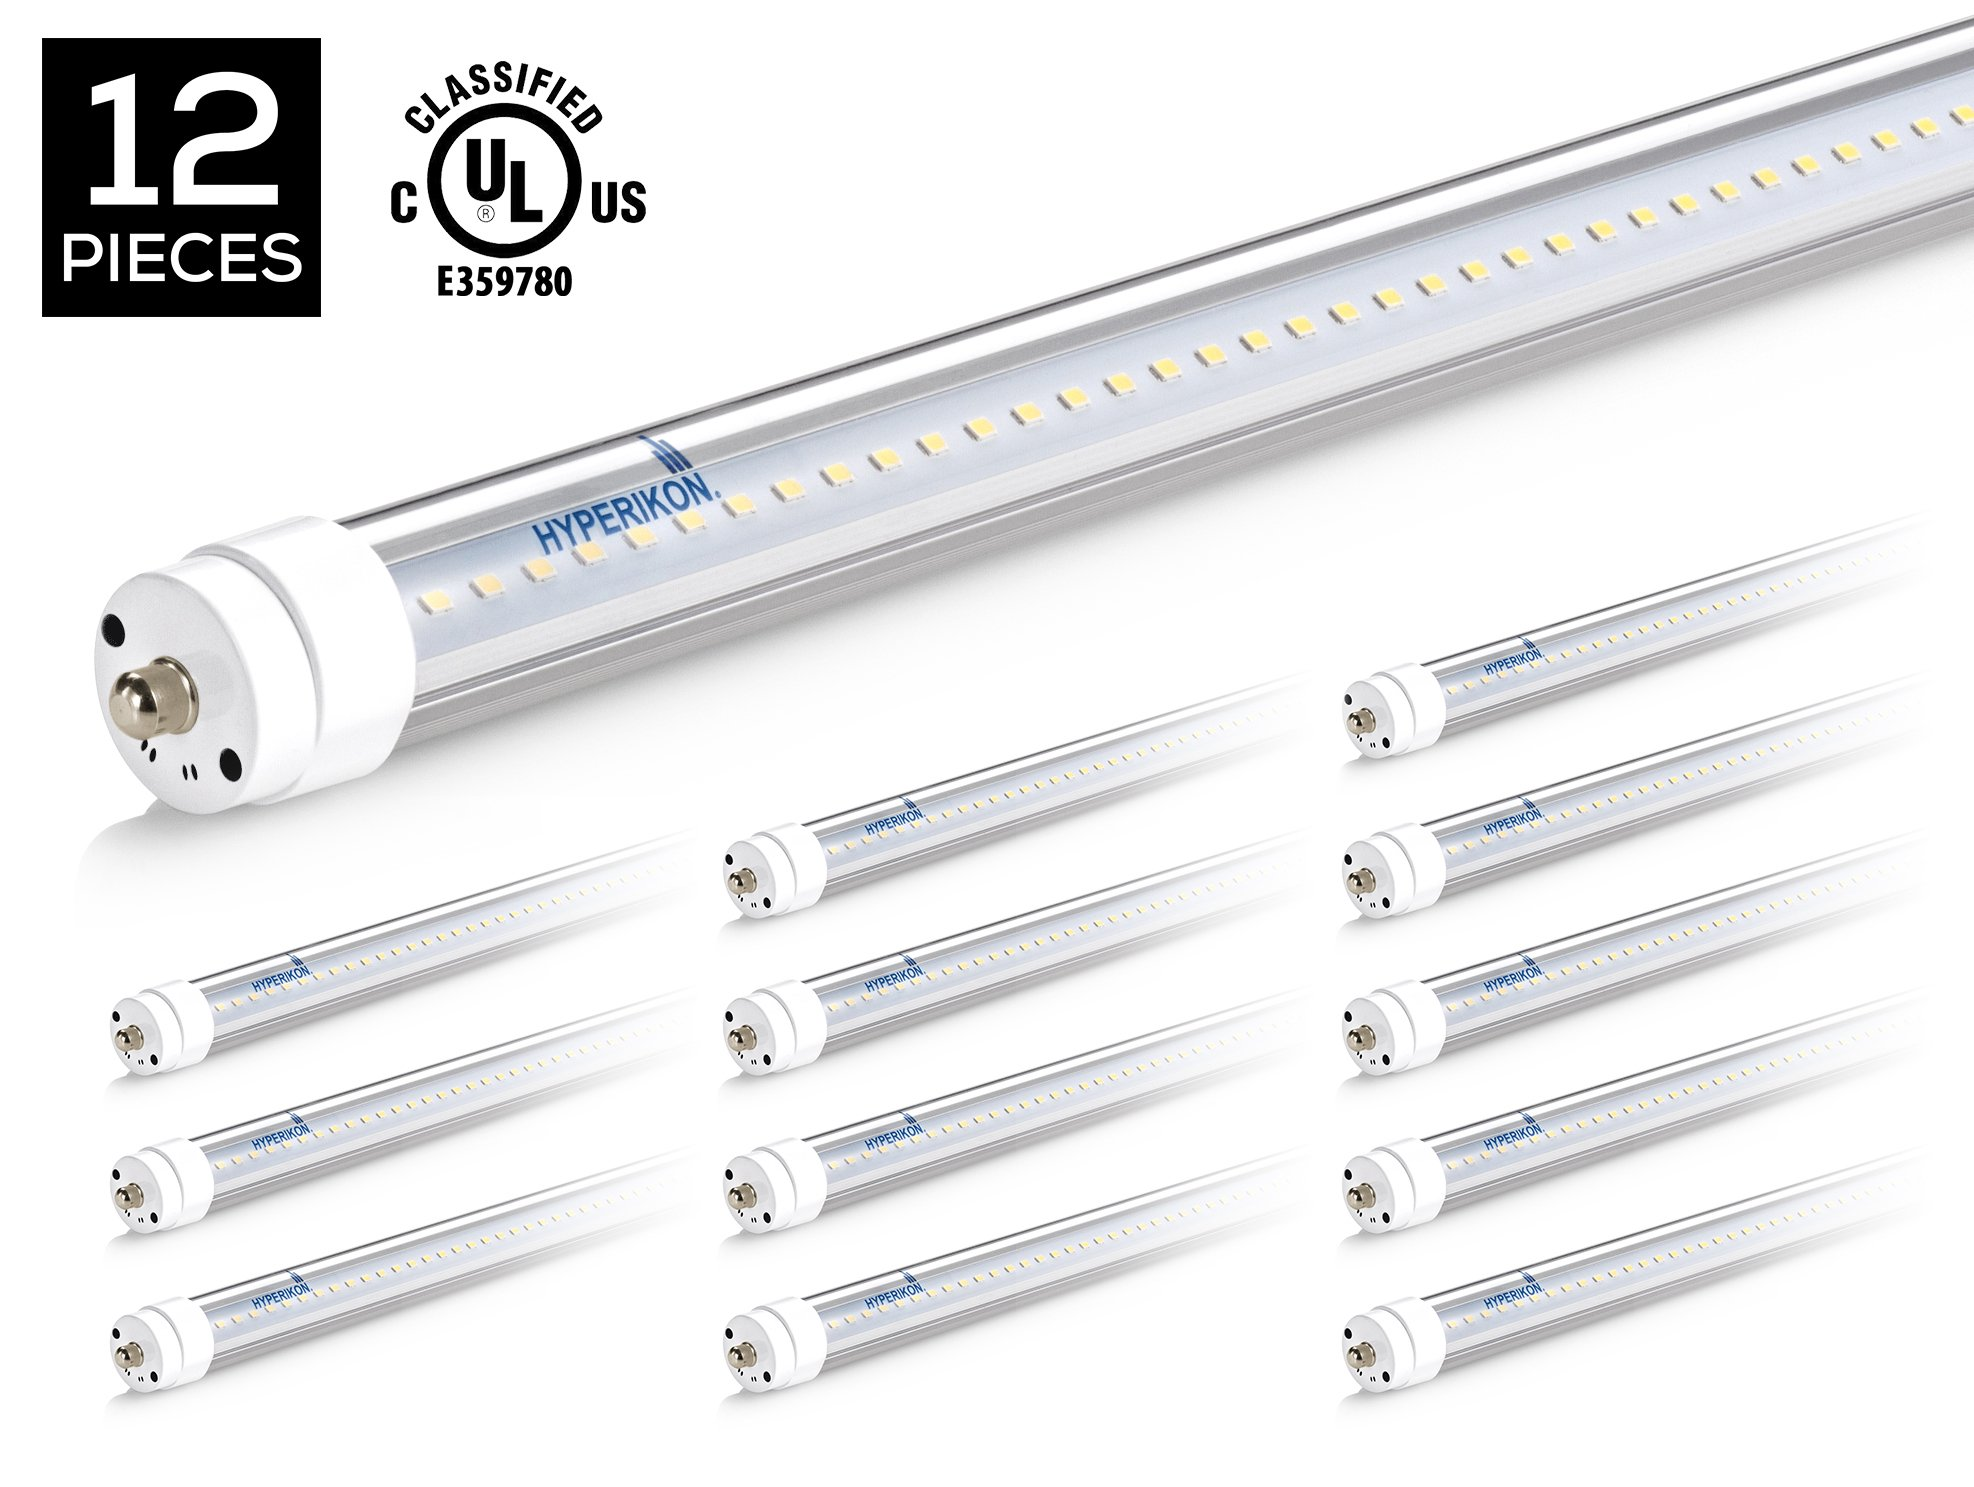 Hyperikon T8 T10 T12 8ft LED Tube Light, 36W (75W Equiv.), Dual-End Powered, Ballast Bypass, Shatterproof, Fluorescent Replacement, 5000k, Clear, 4400 Lumens, Workshop, Warehouse, Garage - 12 Pack